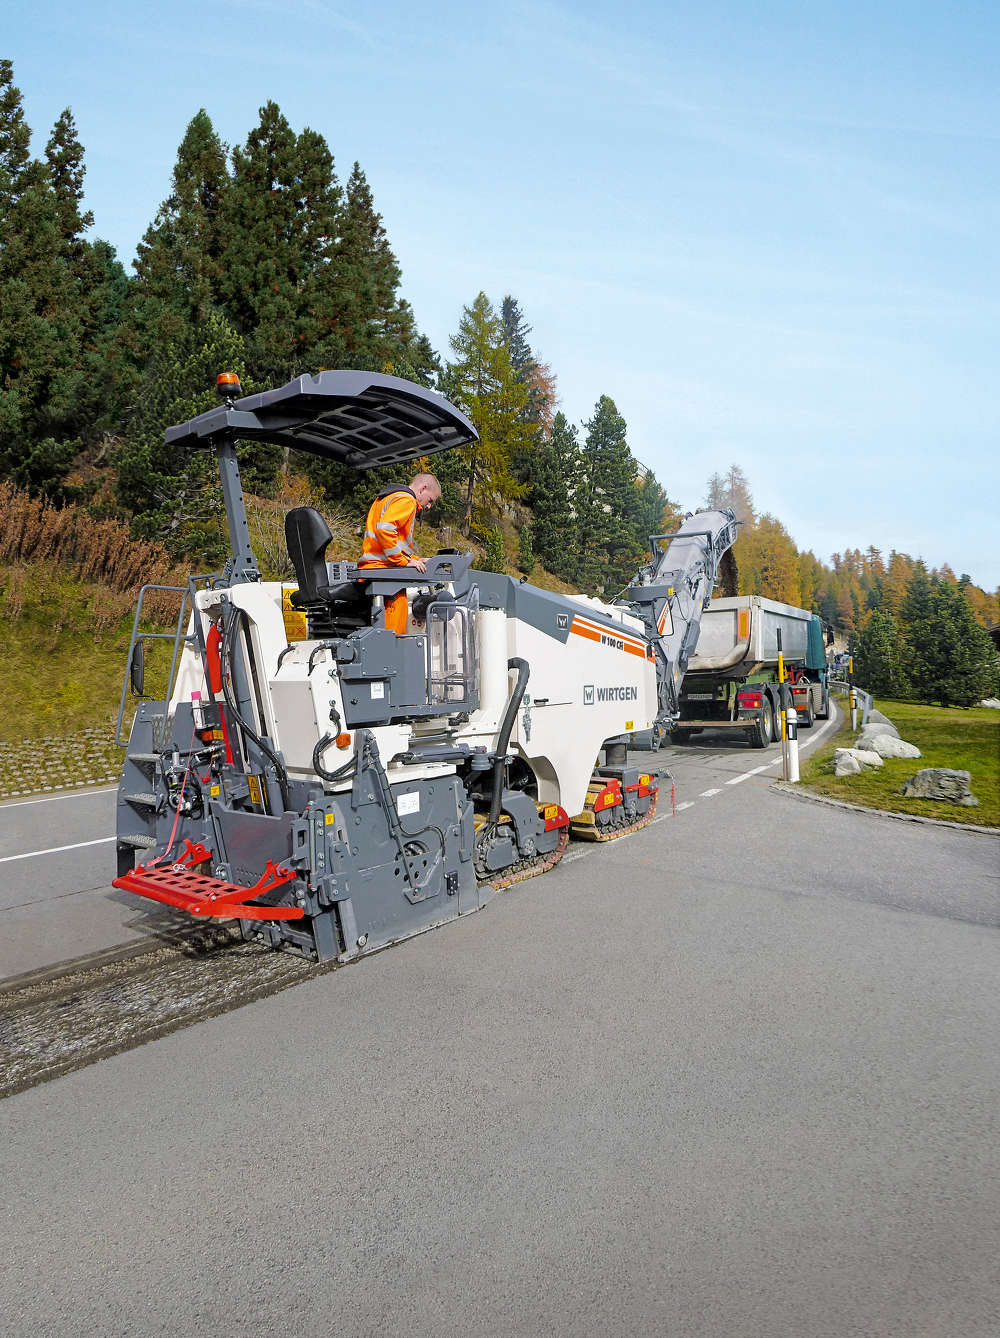 The Wirtgen W 100 CFi in the compact class, with its 3 ft. 3 in. (1 m) working width and 0 to 13-in. (0 to 33 cm) working depth, masters every application, such as milling off pavement layers or milling tie-ins on road rehabilitation projects. With its modified machine weight and compact dimensions, it can be easily transported without a special permit.